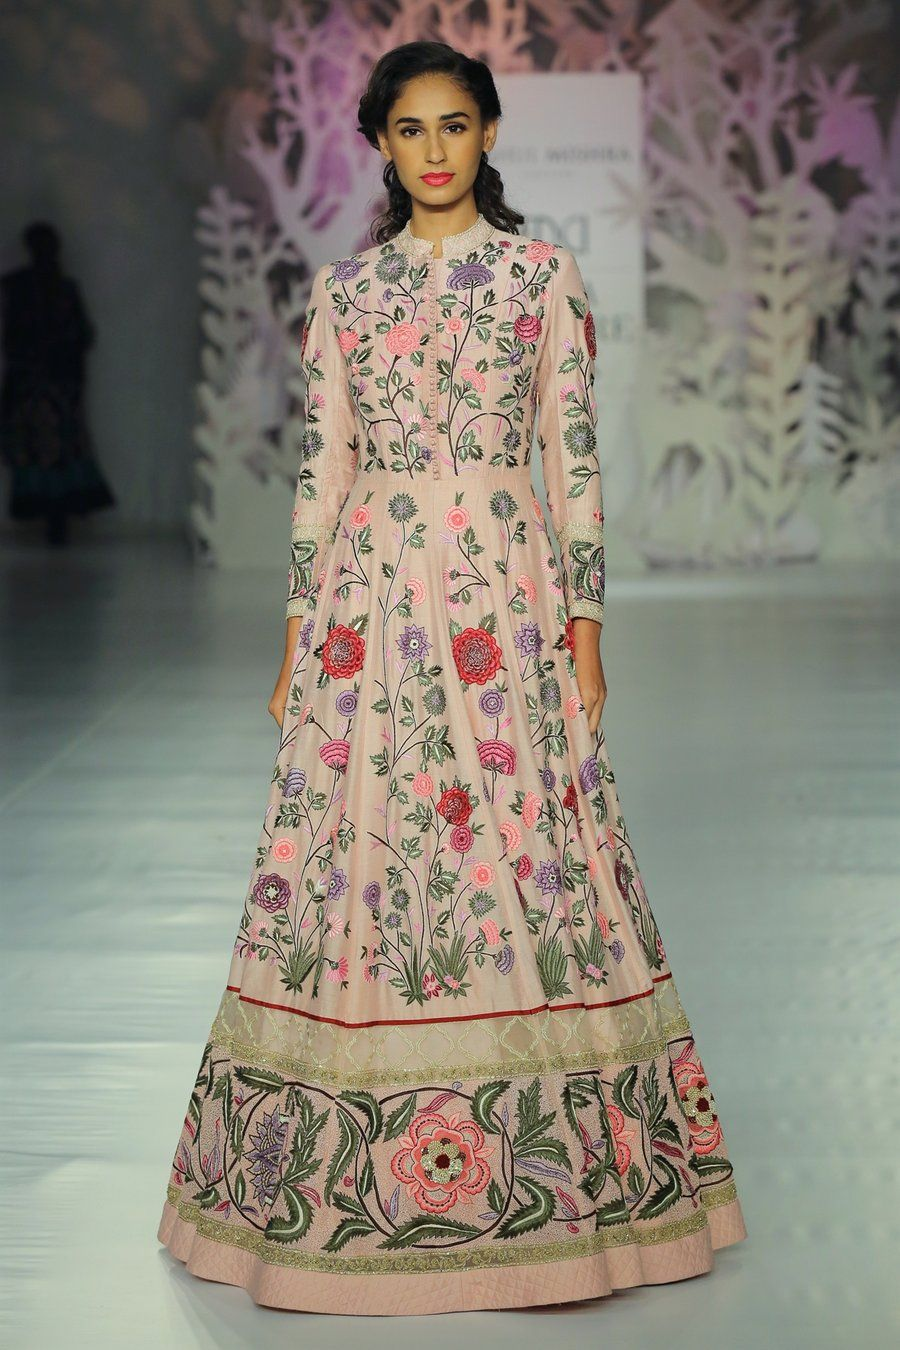 12 EasyBreezy & Pretty Outfits To Swoon Over From Rahul